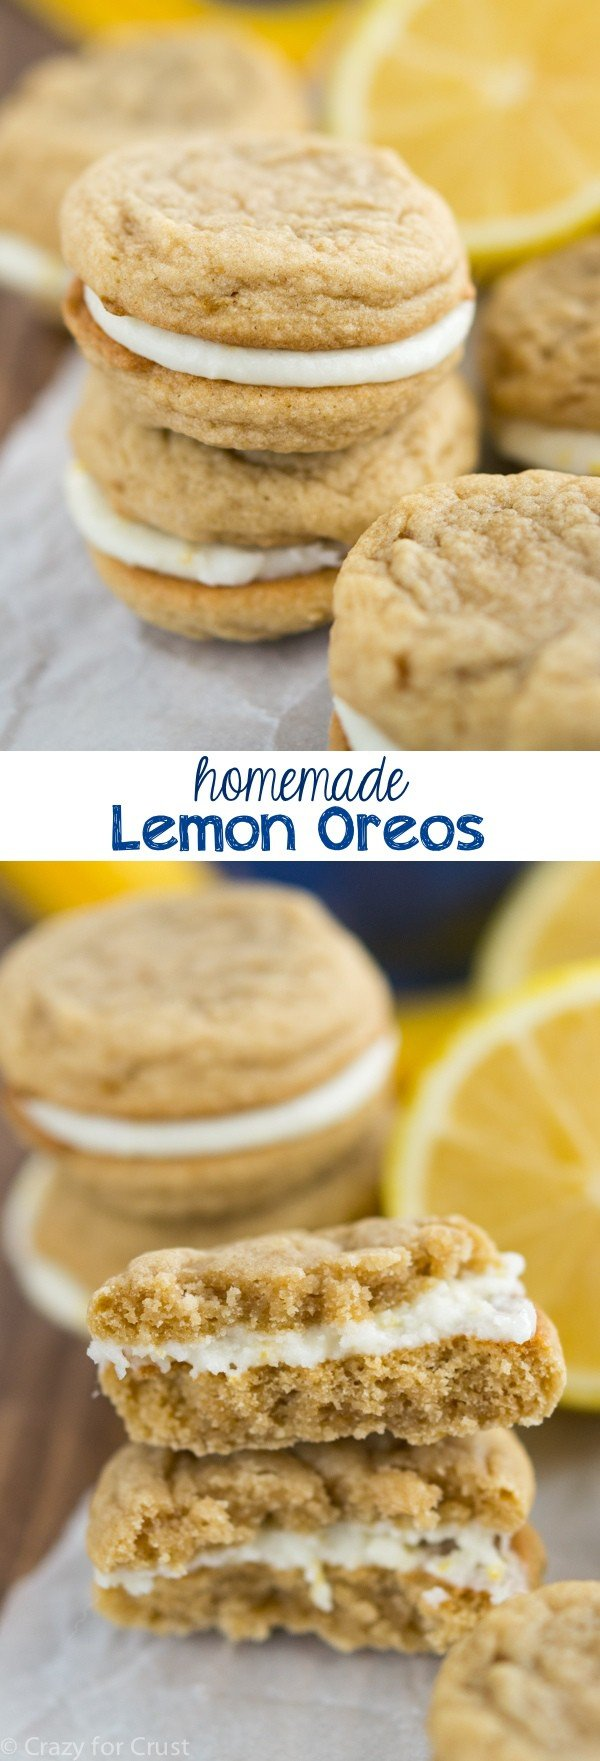 Homemade Lemon Oreos are soft, sweet, tart, and better than real Oreos!